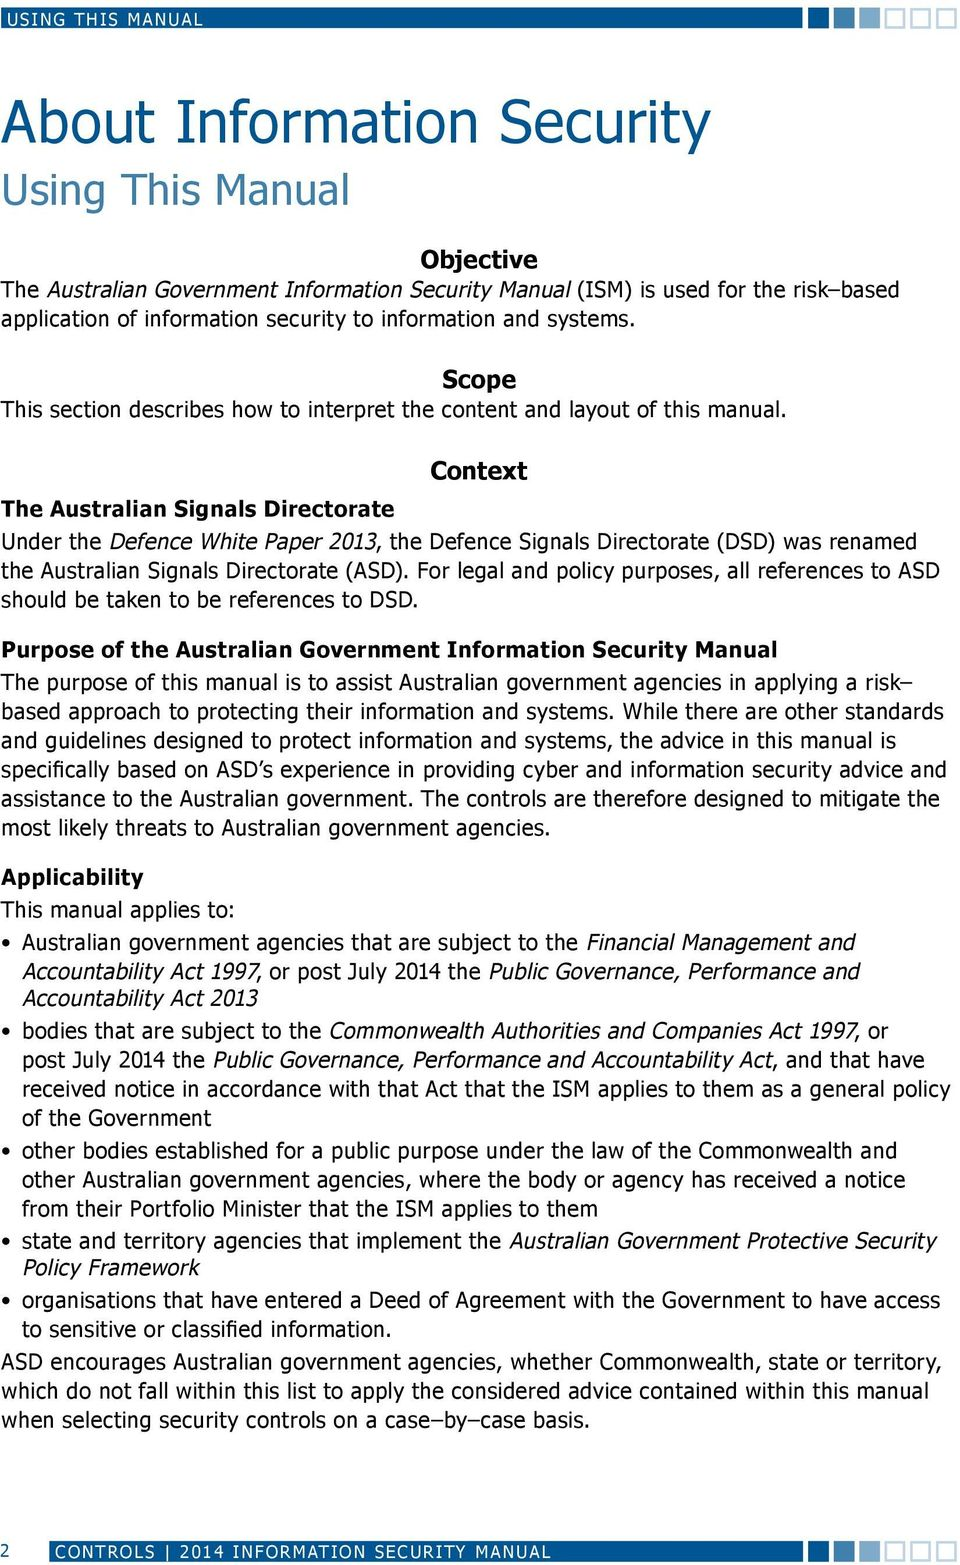 The Australian Signals Directorate Context Under the Defence White Paper 2013, the Defence Signals Directorate (DSD) was renamed the Australian Signals Directorate (ASD).